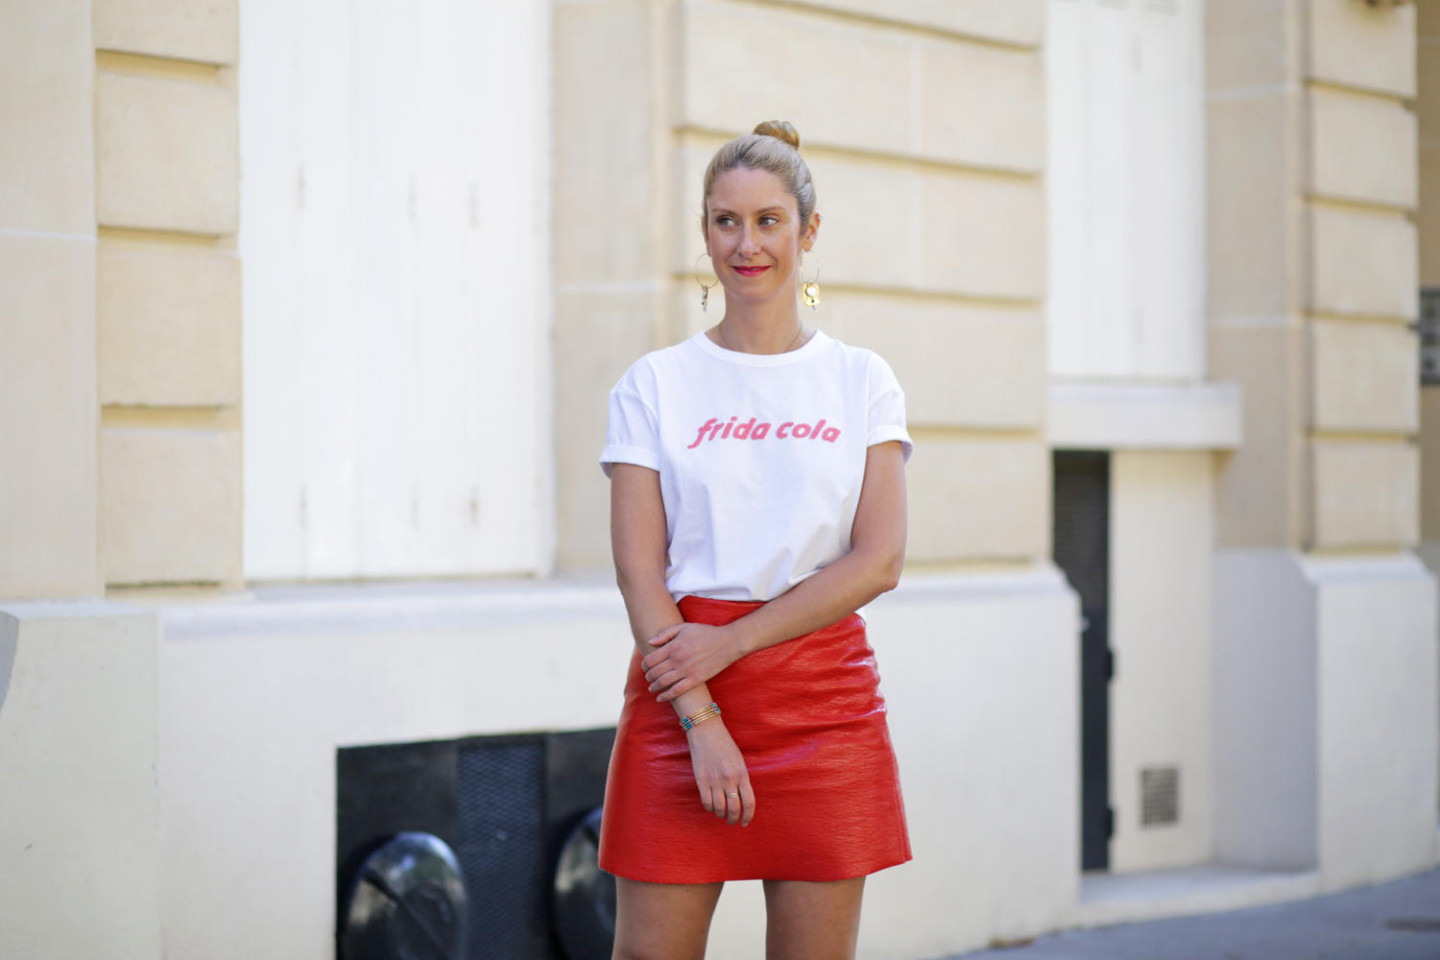 Frida Cola Tee And Red Skirt Other Stories Blog Mode